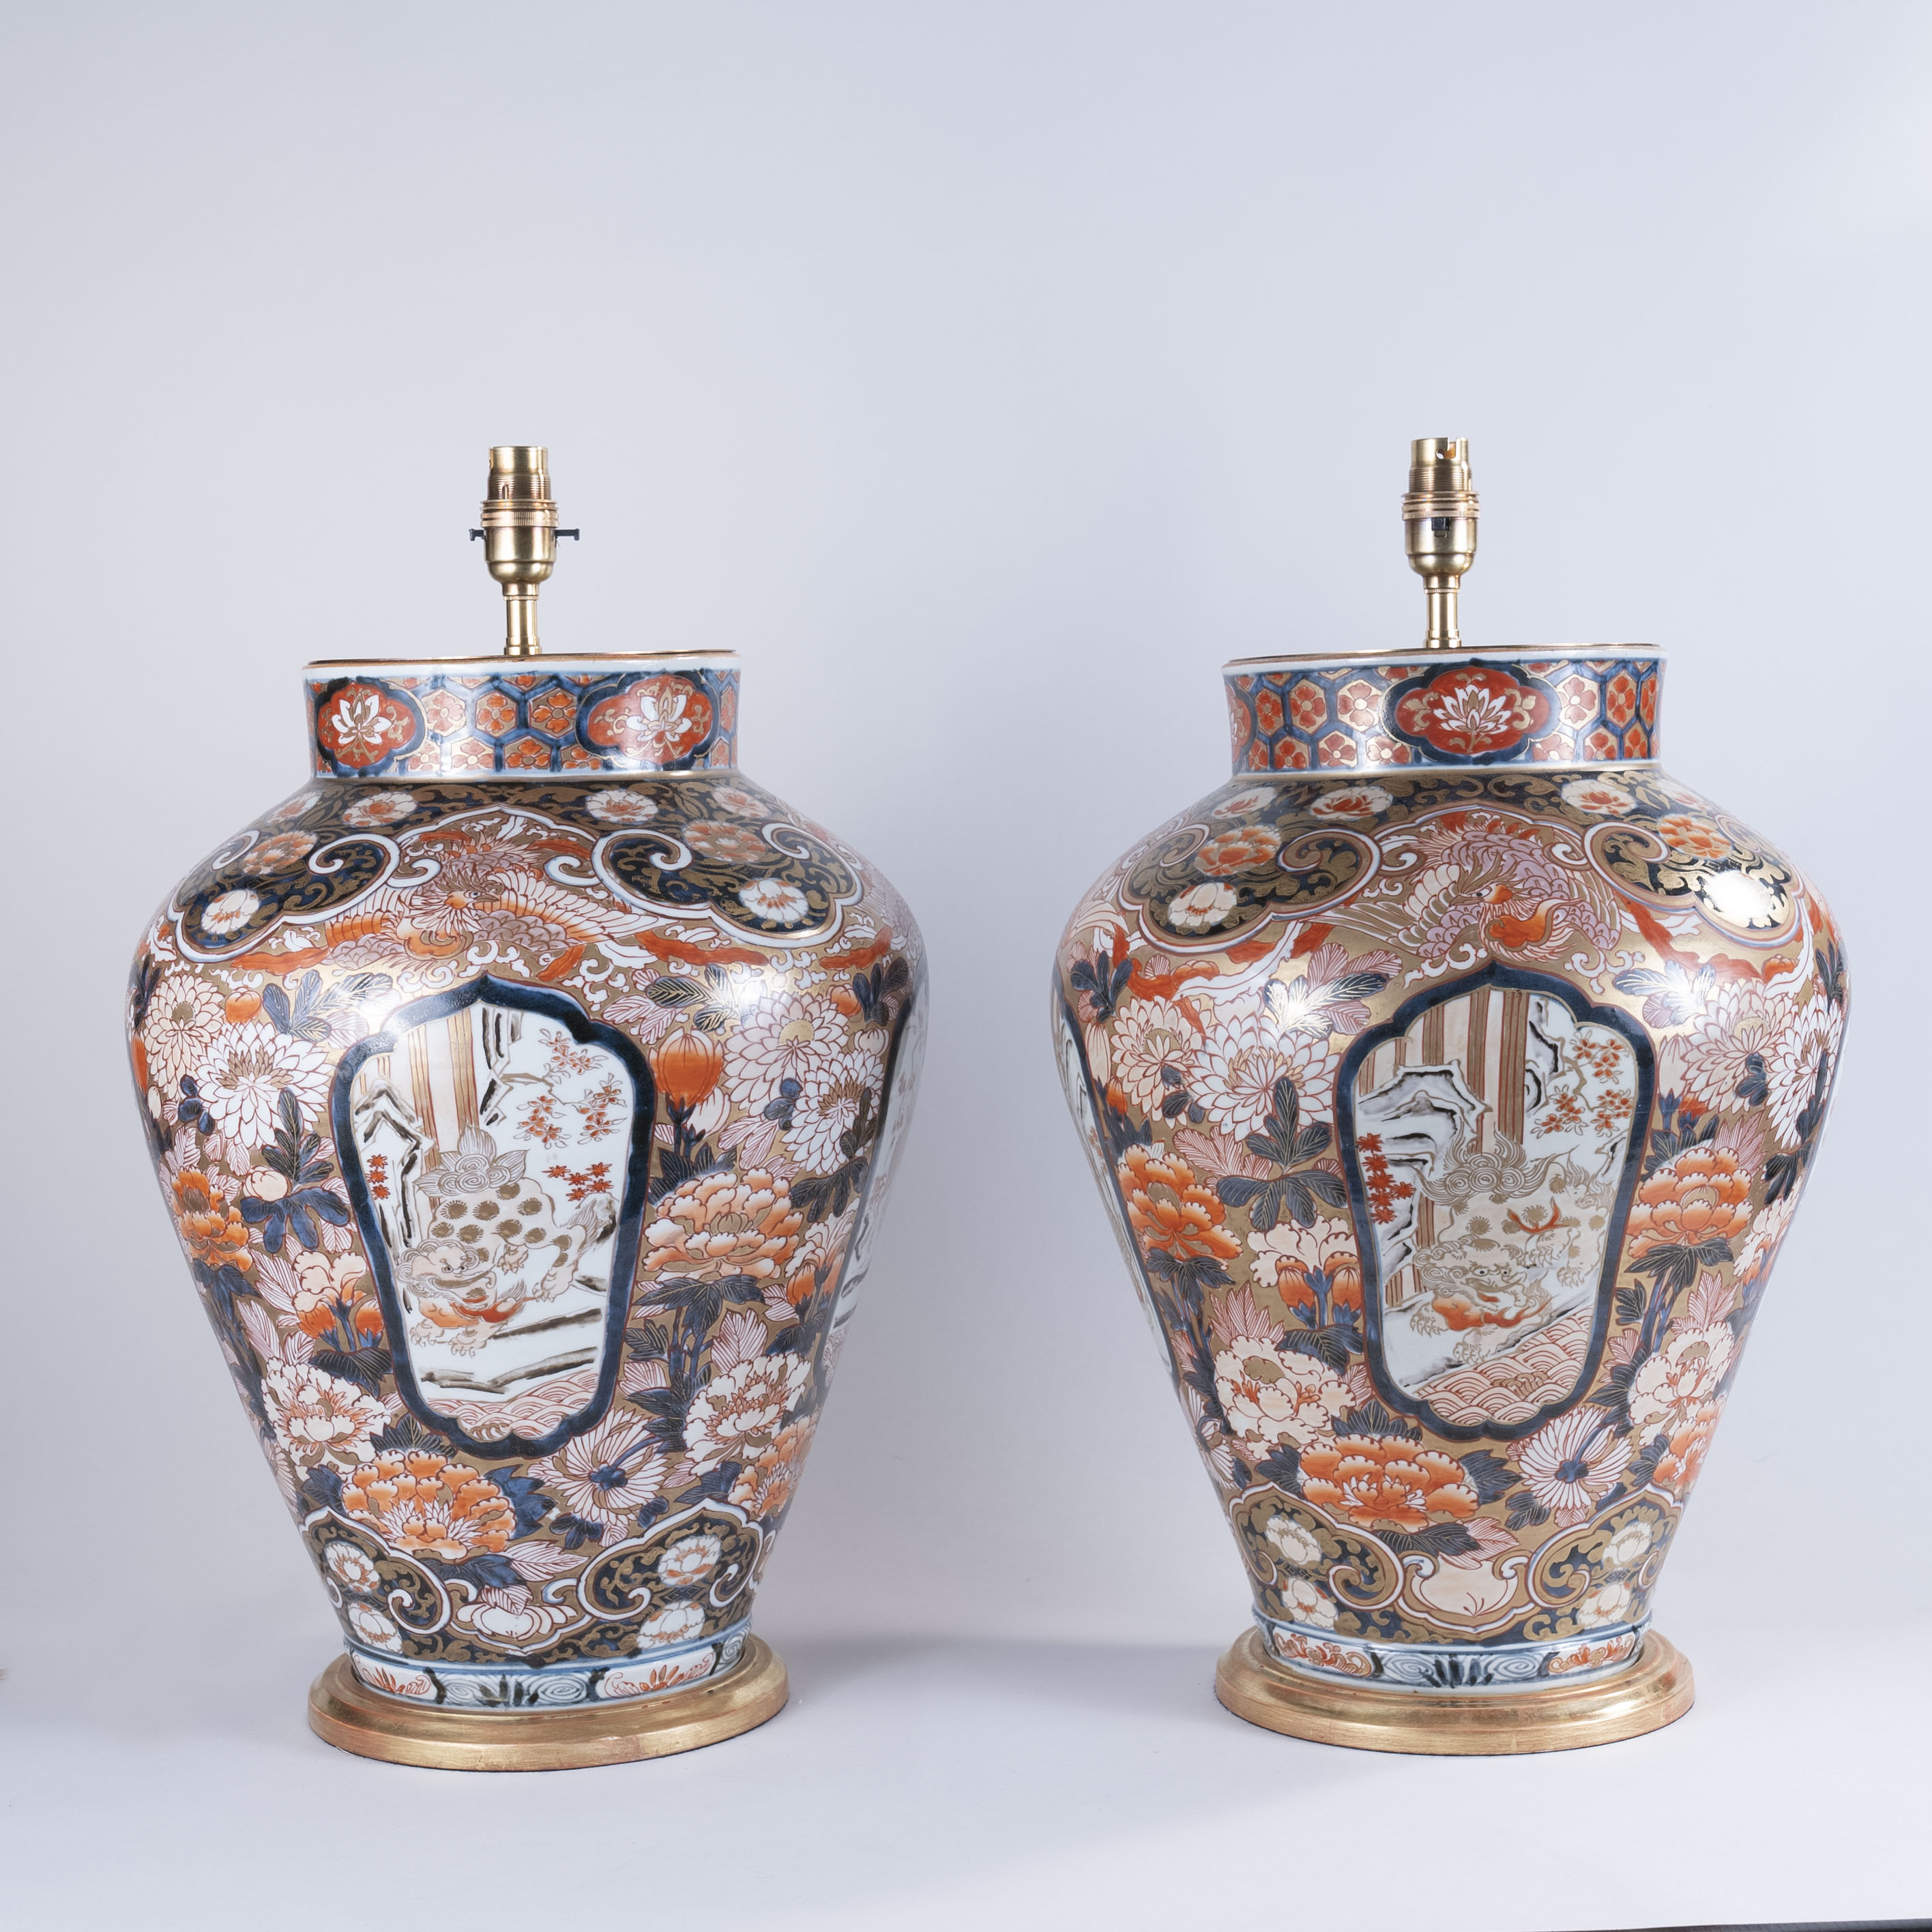 Large Pair of Early 18th Century Japanese Imari Vases, lamped